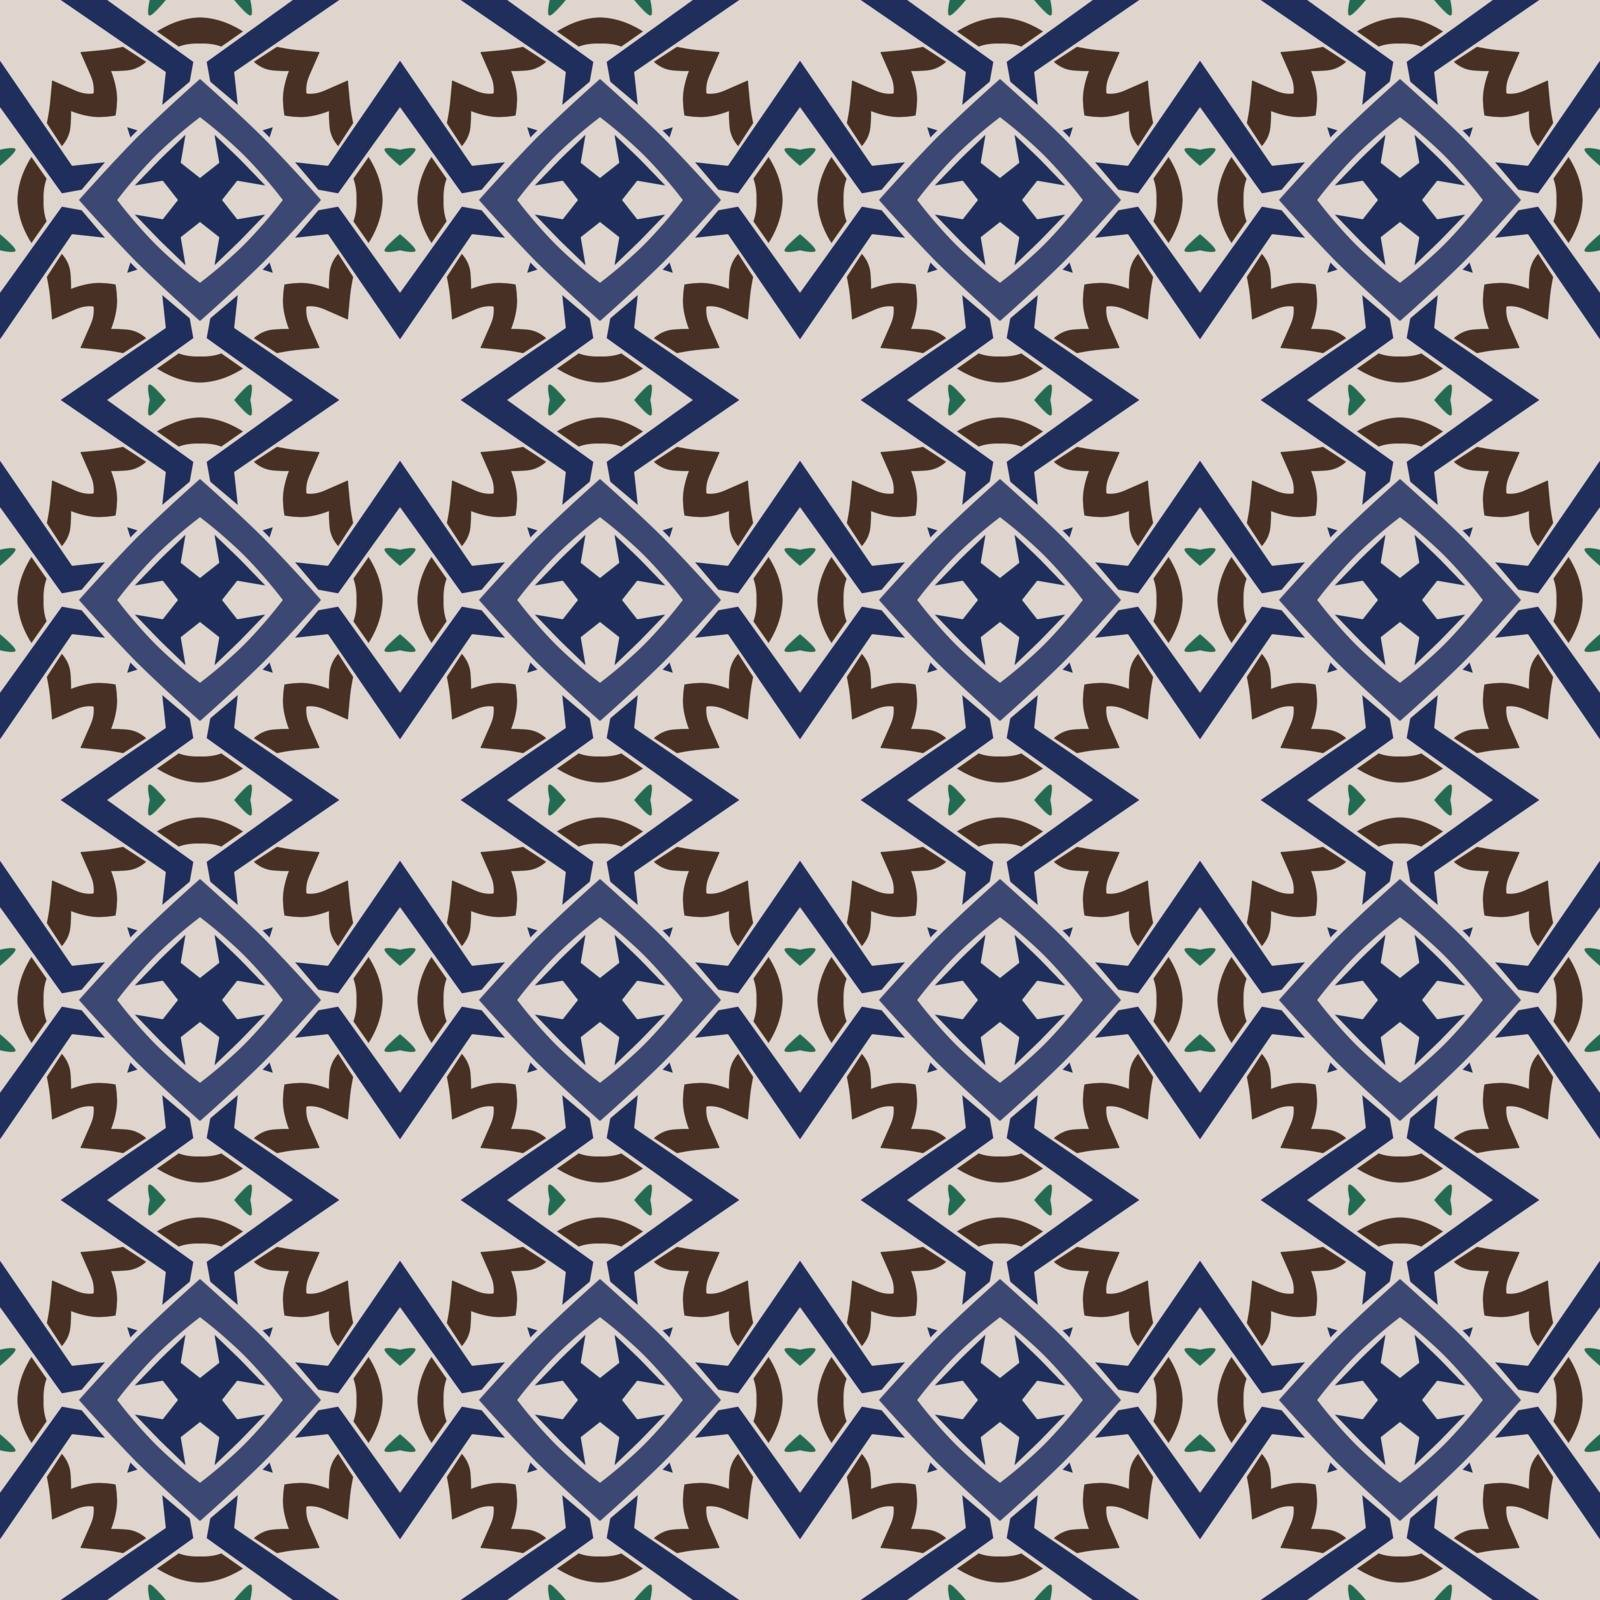 Seamless illustrated pattern made of abstract elements in beige,green, blue and brown